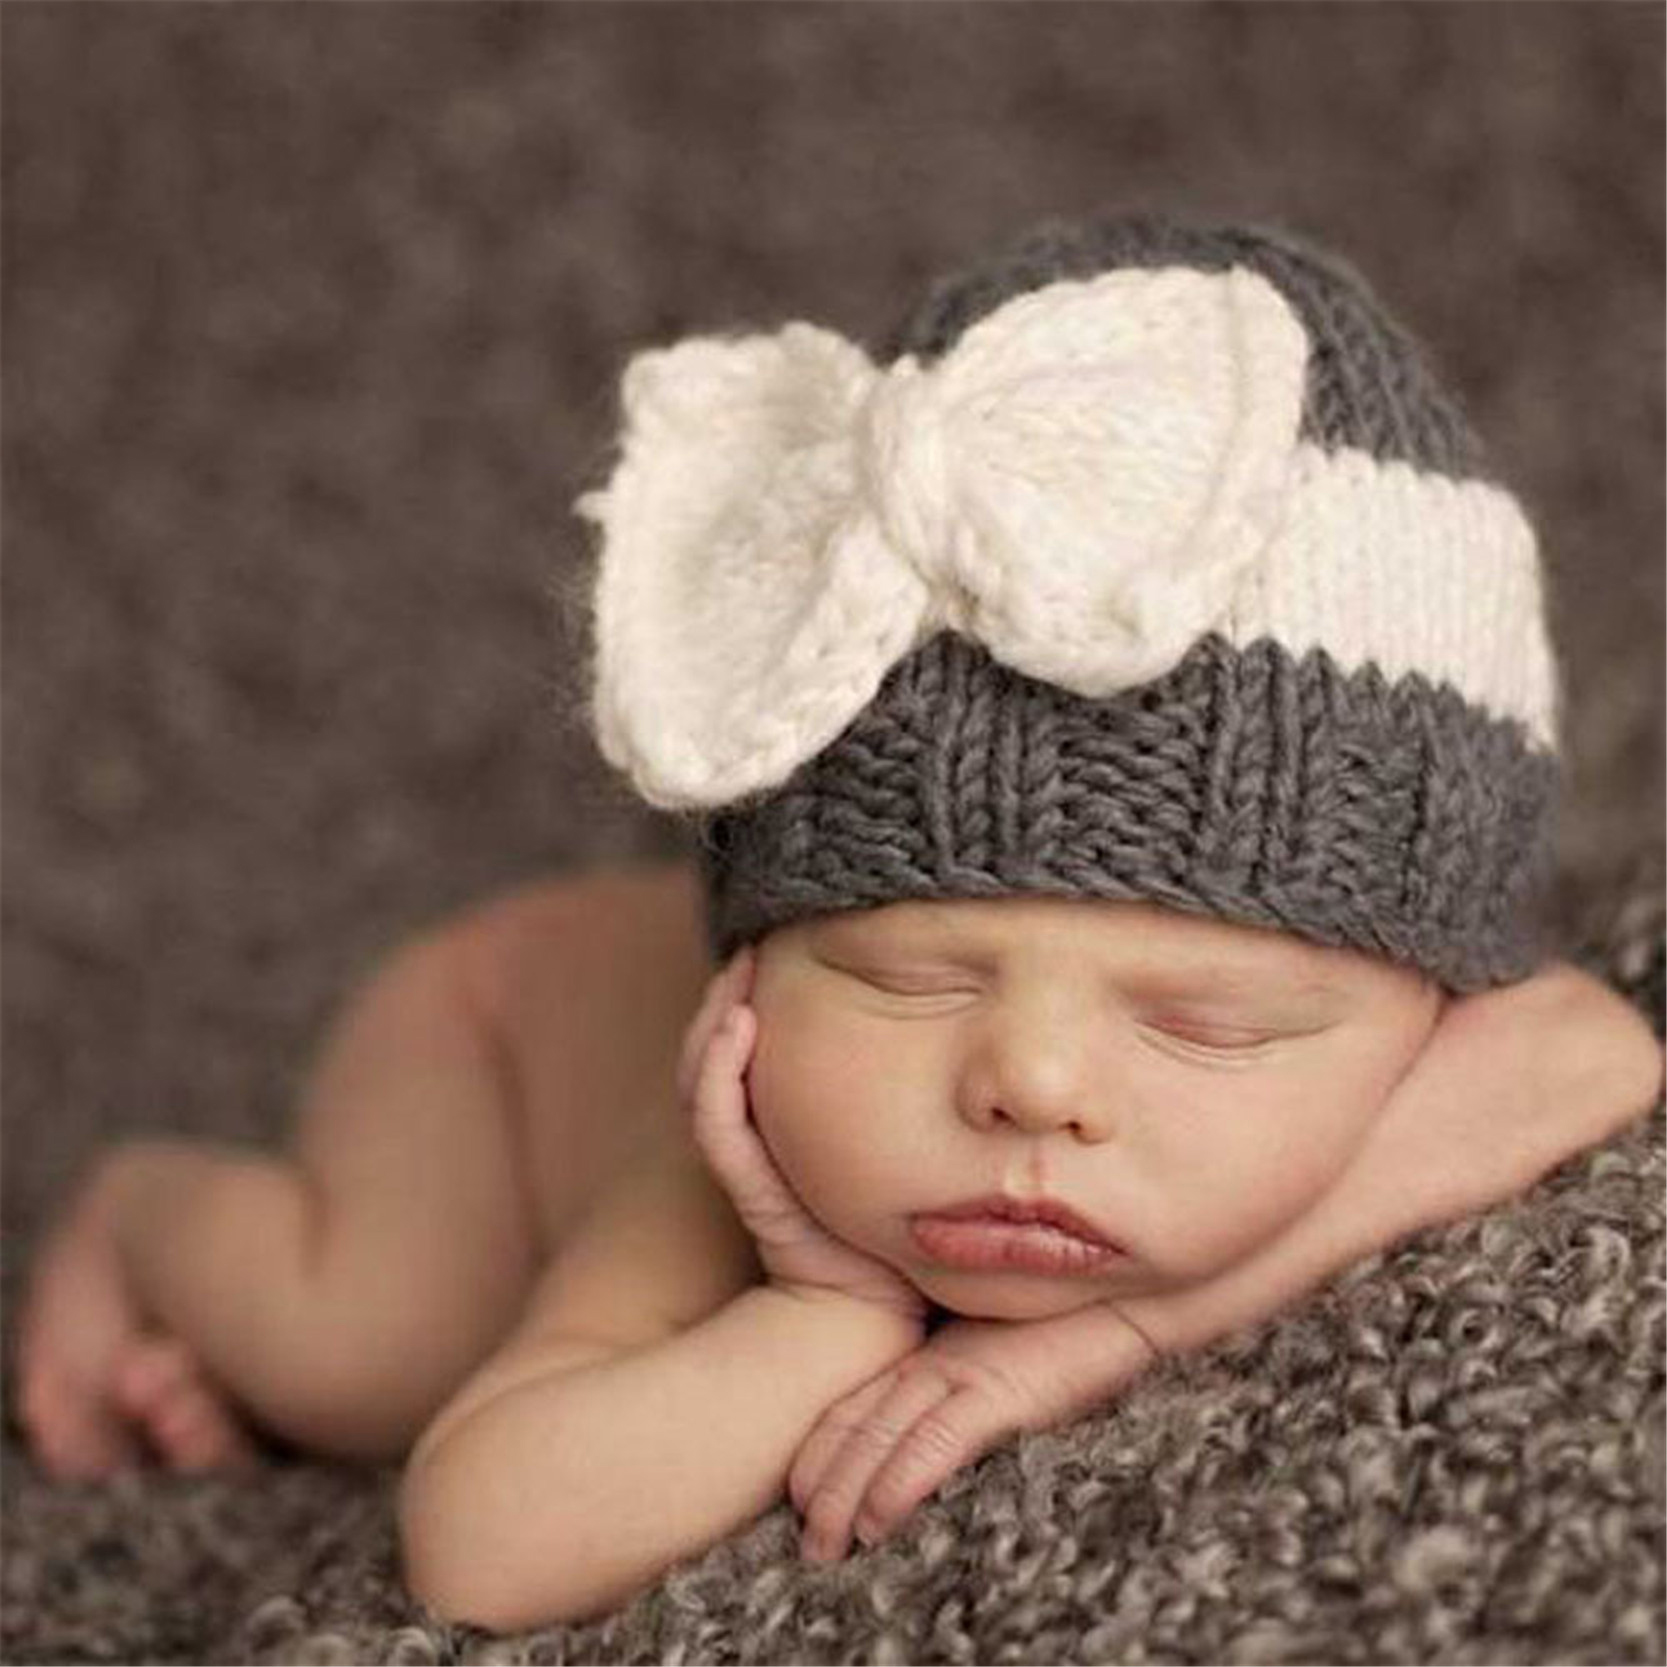 487cc4c0b25 New Cute Newborn Baby Knitting Hat Bow Knot Cap Infant Girl Winter Warm  Beanie-in Hats   Caps from Mother   Kids on Aliexpress.com